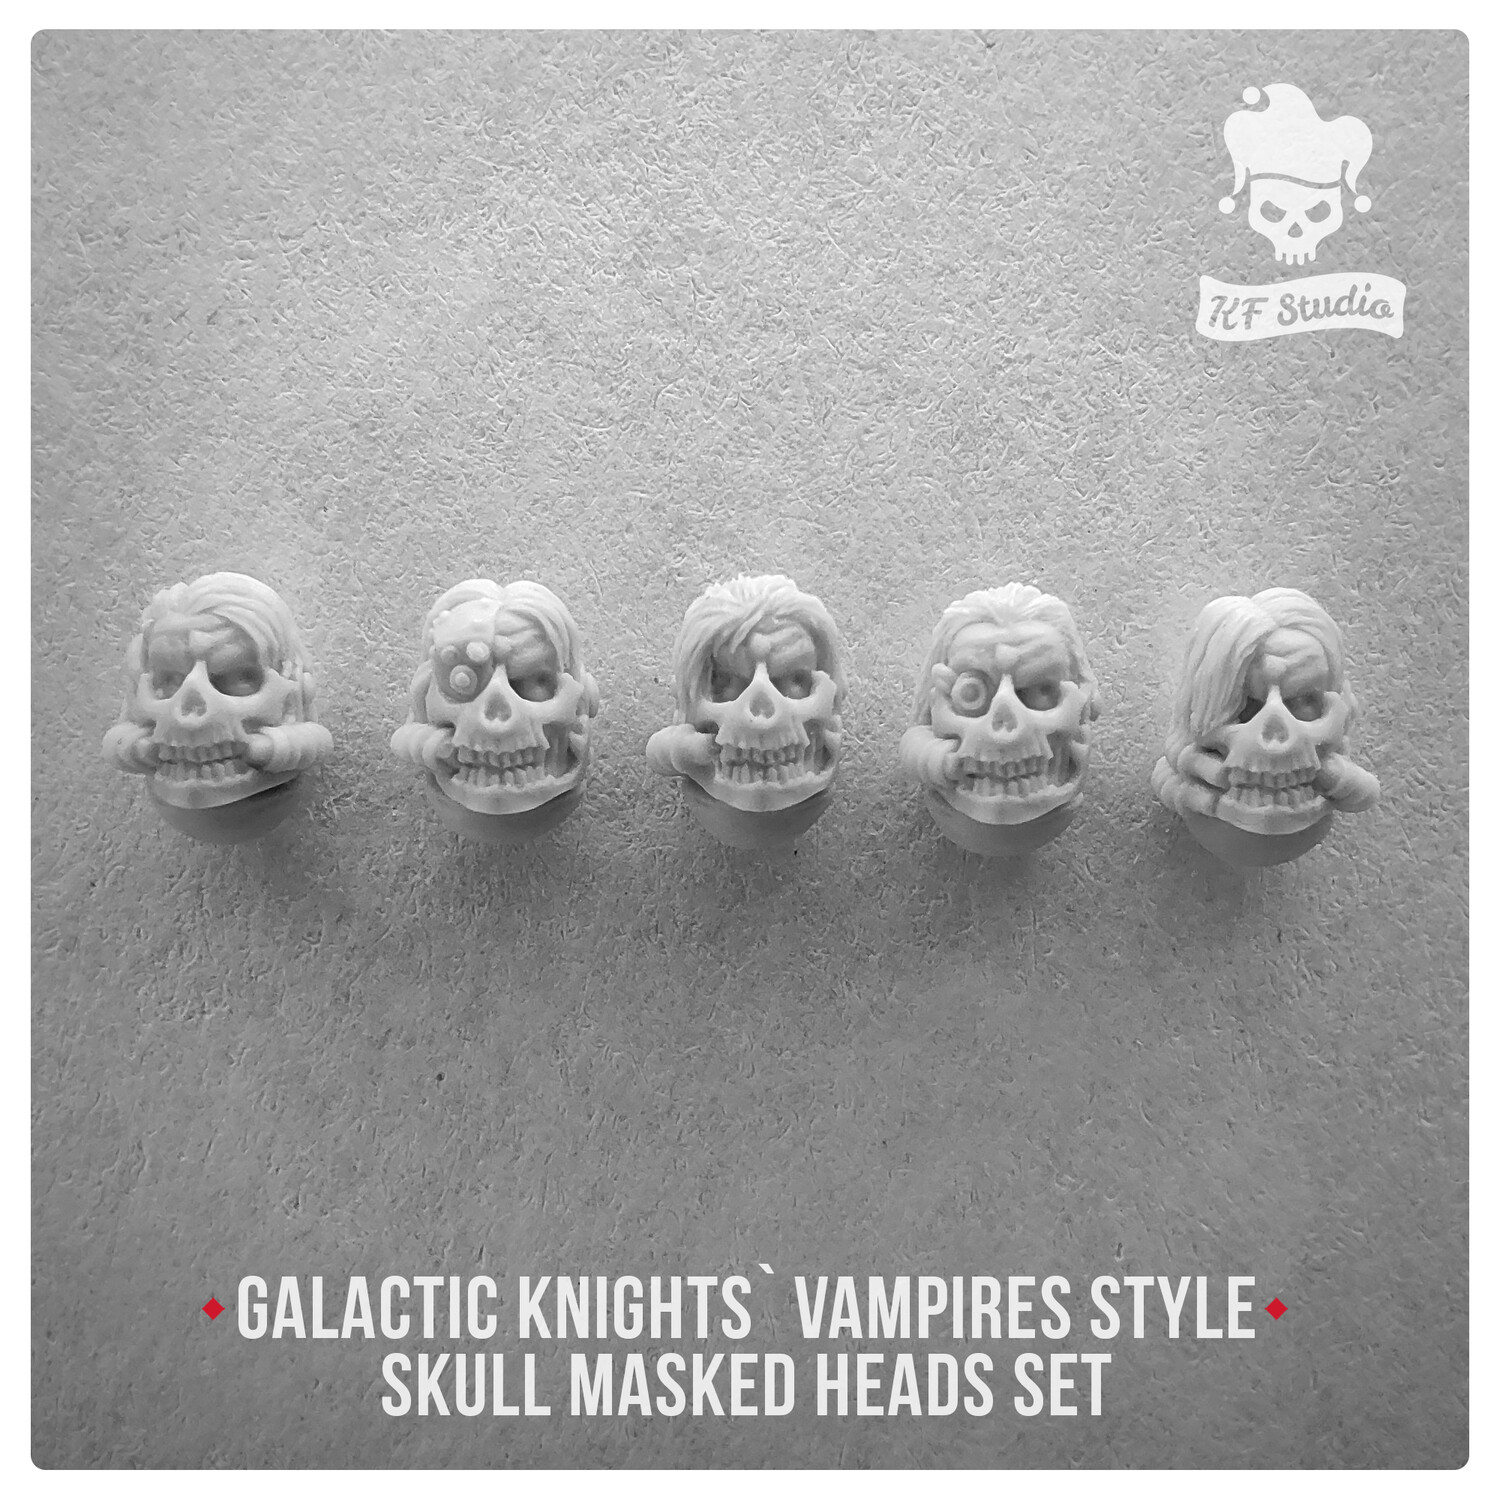 Galactic Knights Vampire Style skull masked heads by KFStudio